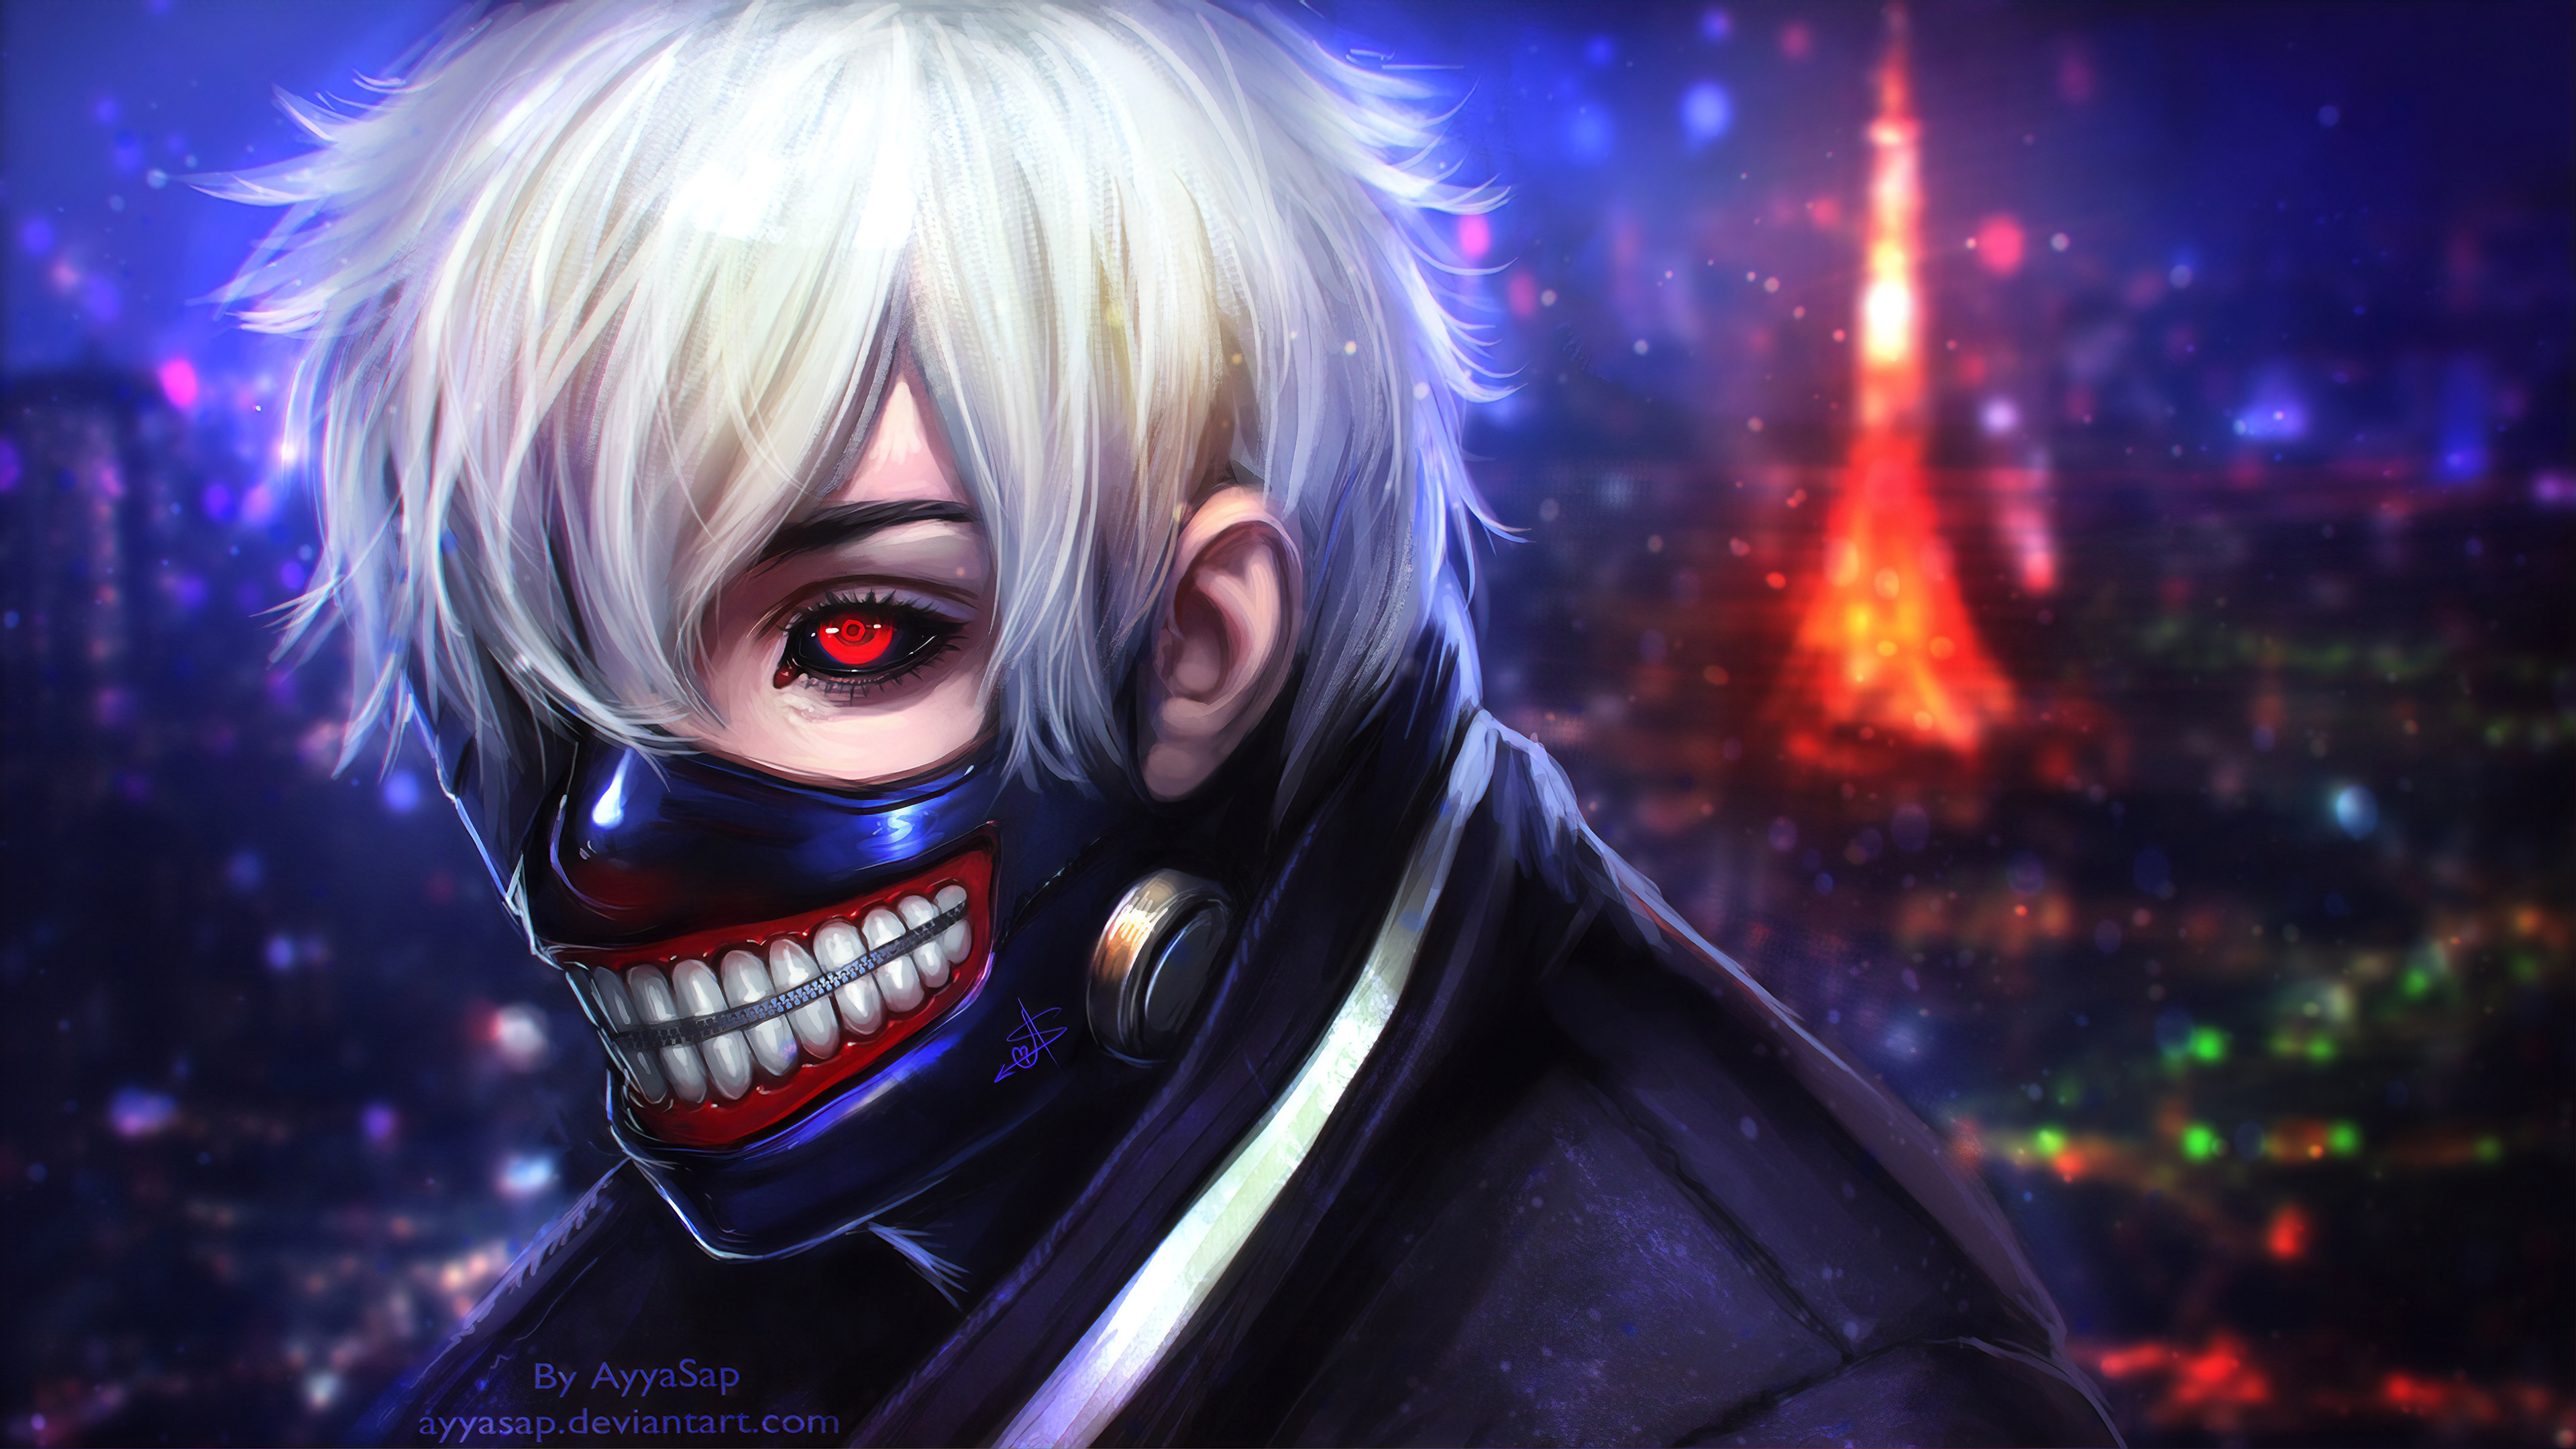 Wallpaper 4k Tokyo Ghoul Kaneki Ken Art 4k Wallpapers Anime